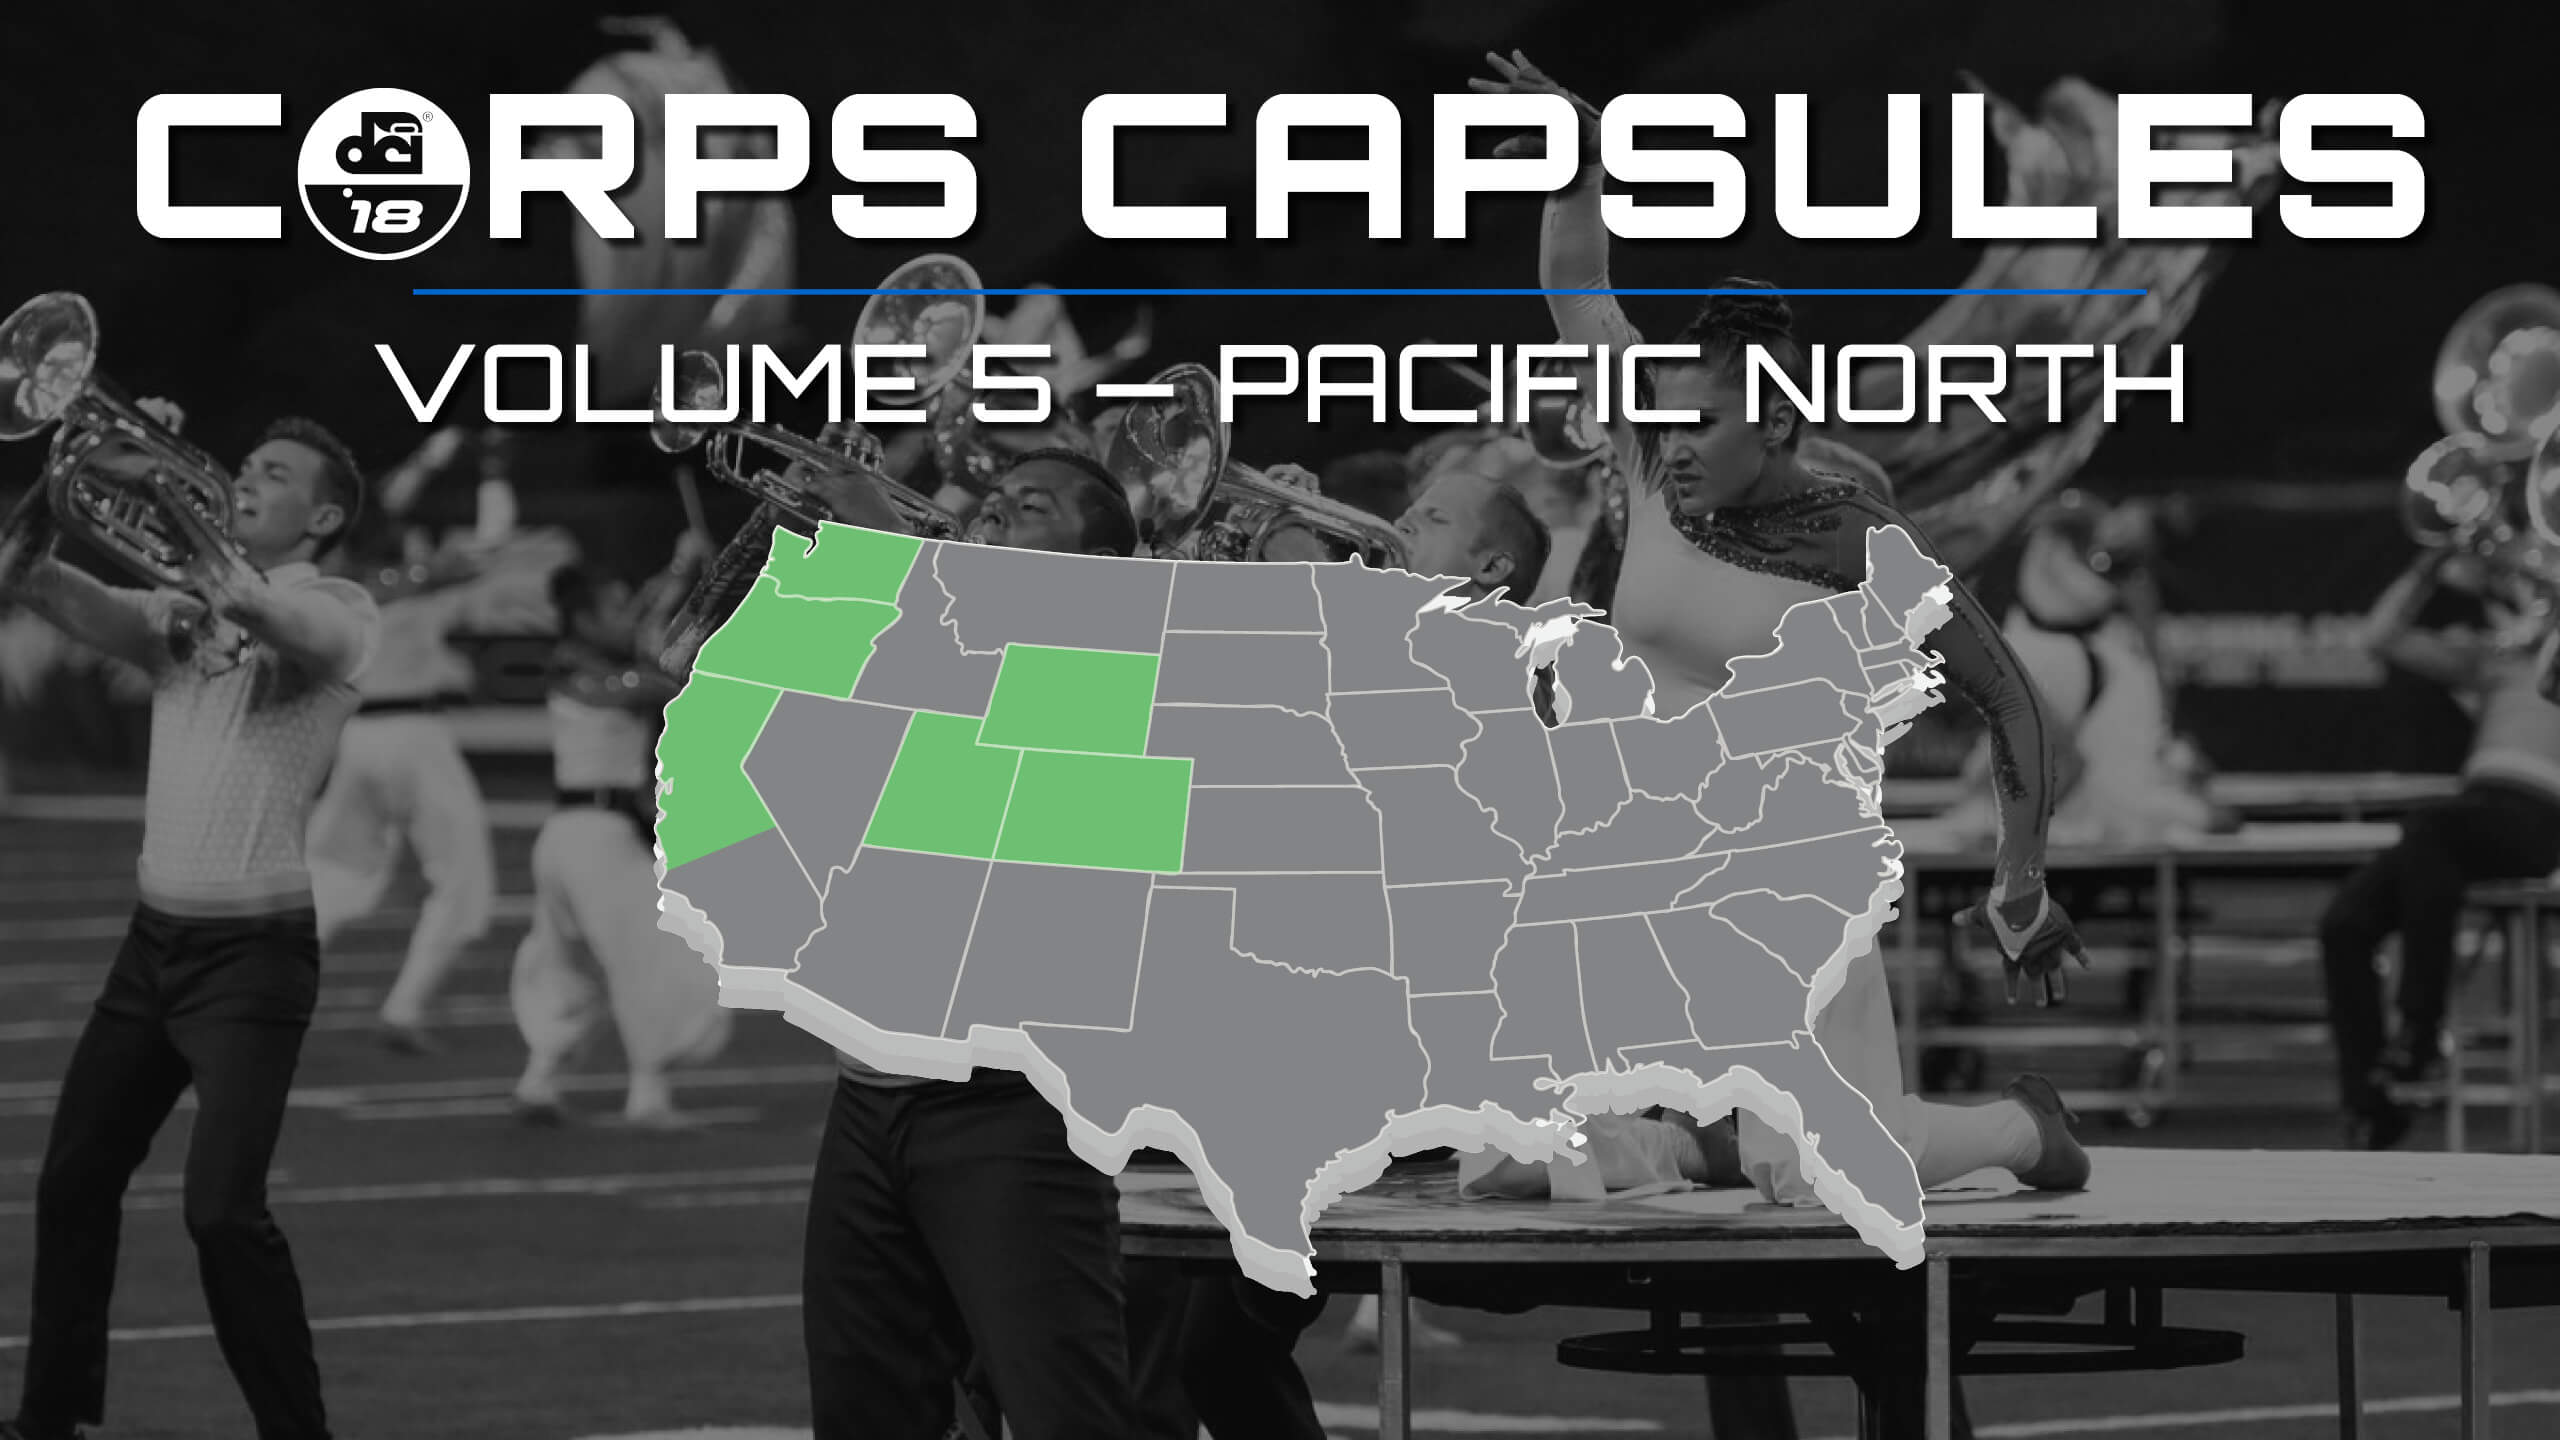 2018 DCI Corps Capsules — Volume 5: Pacific North